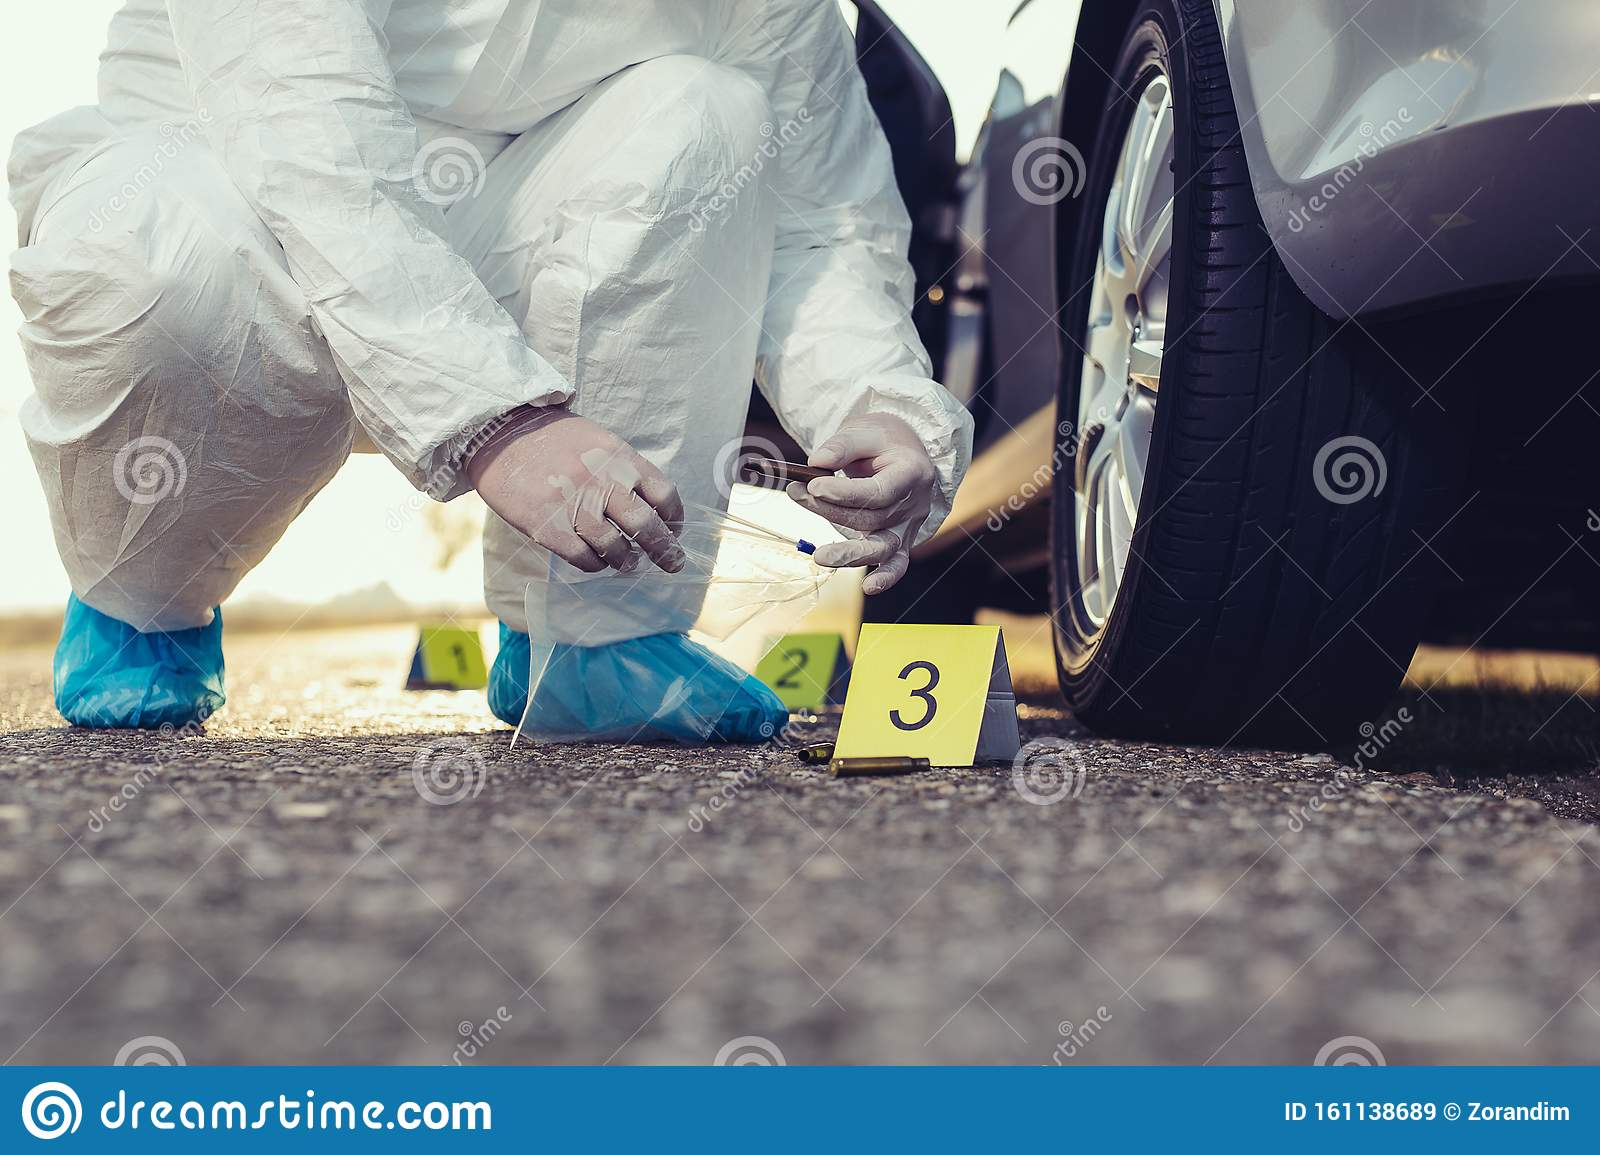 Crime Scene Investigation Forensic Science Place Of Shooting Stock Image Image Of Equipment Glass 161138689